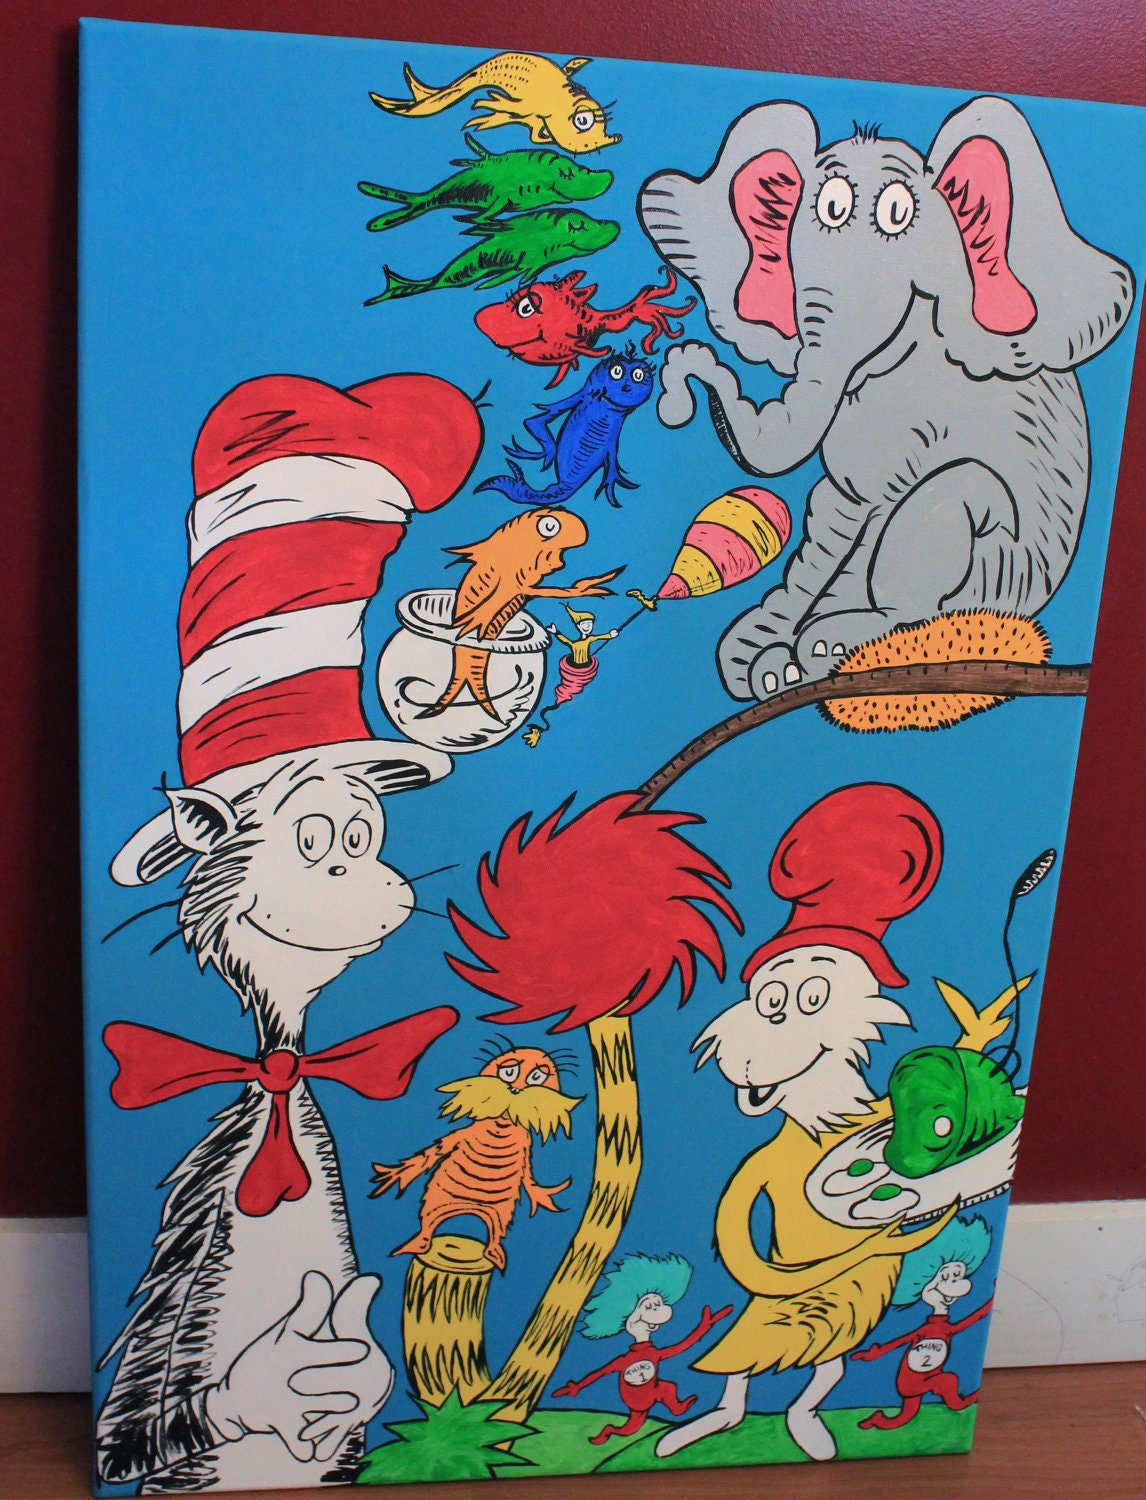 Items similar to dr seuss character mural on etsy for Character mural